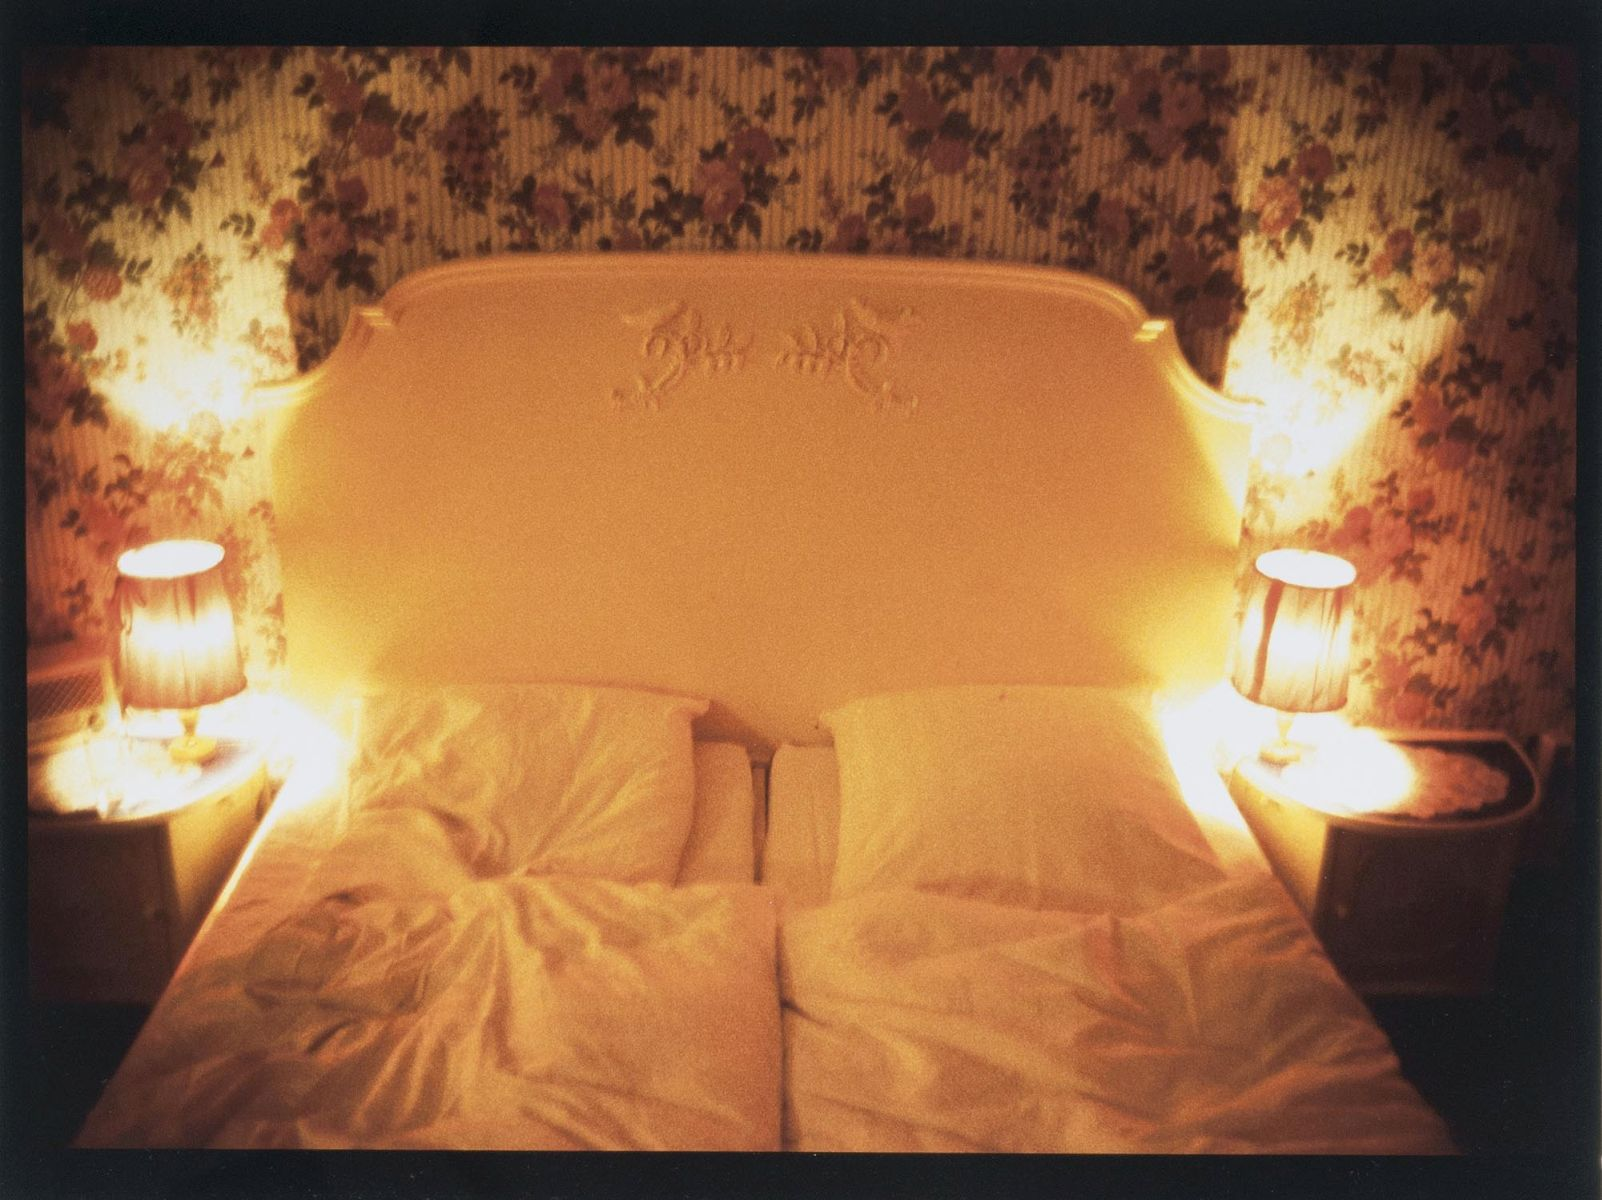 Honeymoon Suite, Nuremberger Eck, Berlin, 1994